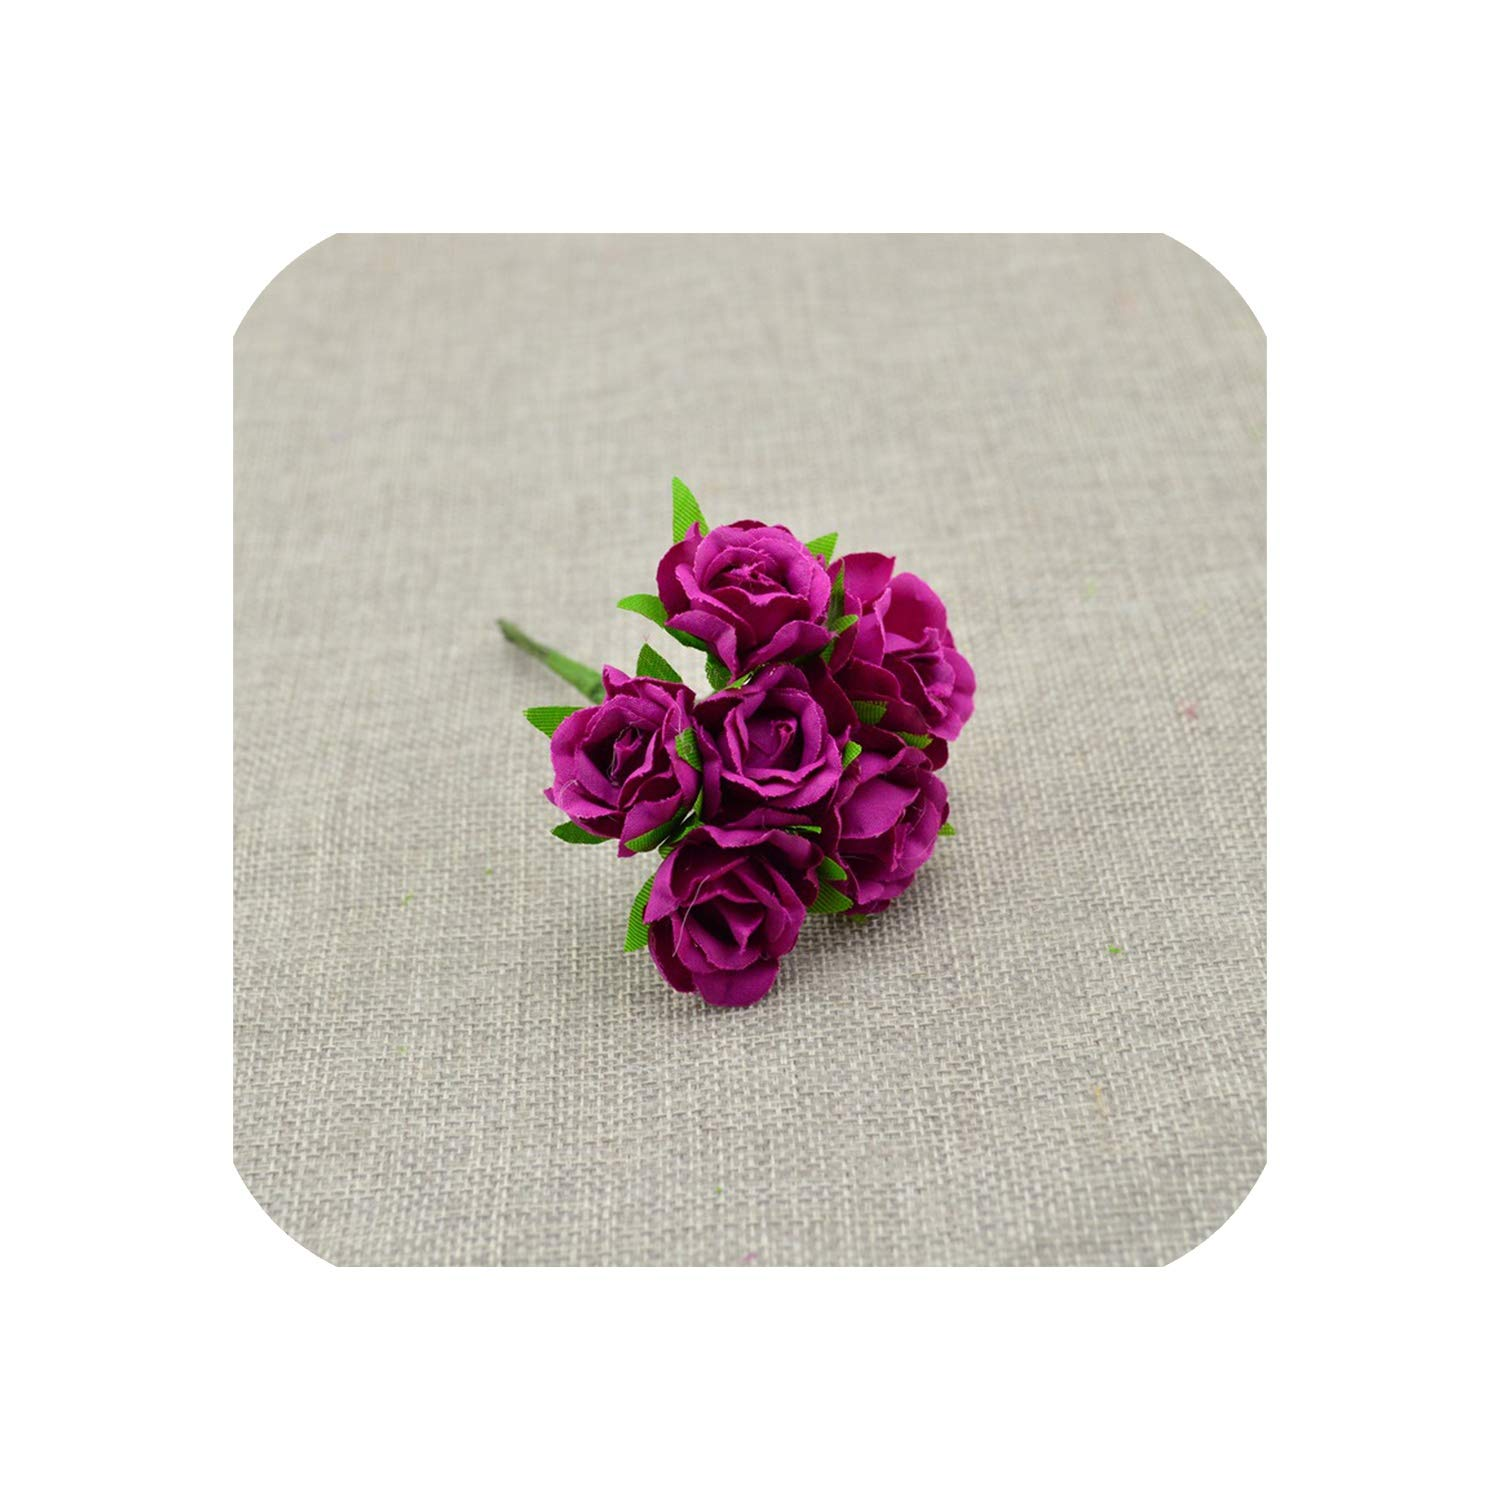 April-With-You-6pcs-Silk-Flower-Wedding-car-Bridal-Bouquet-Roses-Artificial-Flower-for-Decoration-Scrapbooking-DIY-Wreaths-Craft-Candy-Gift-BoxPurple-red